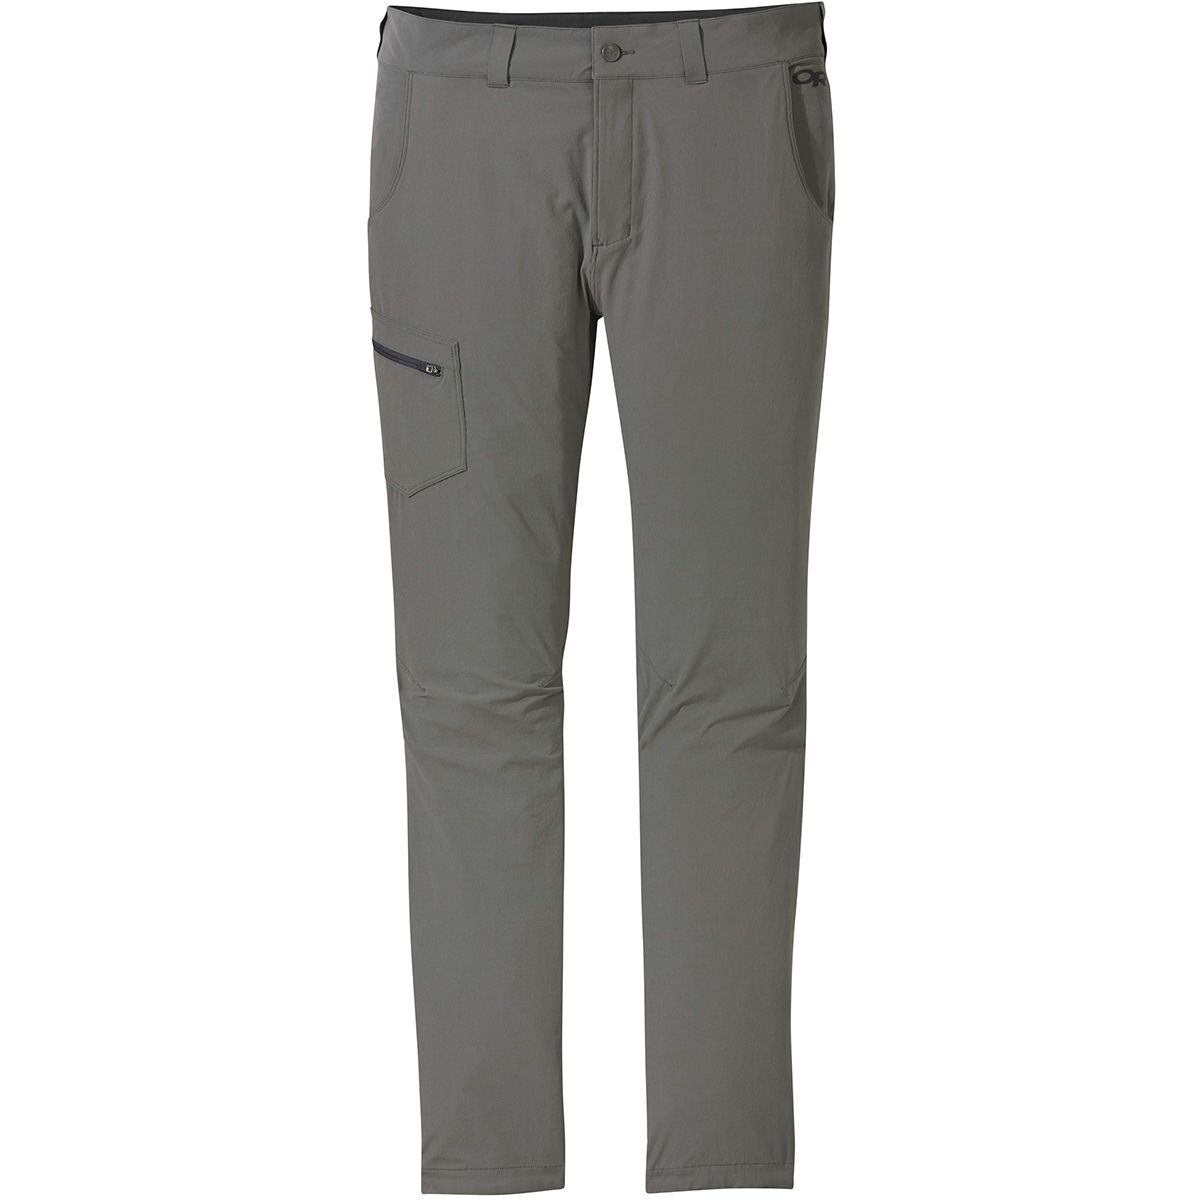 Soft Shell Pants